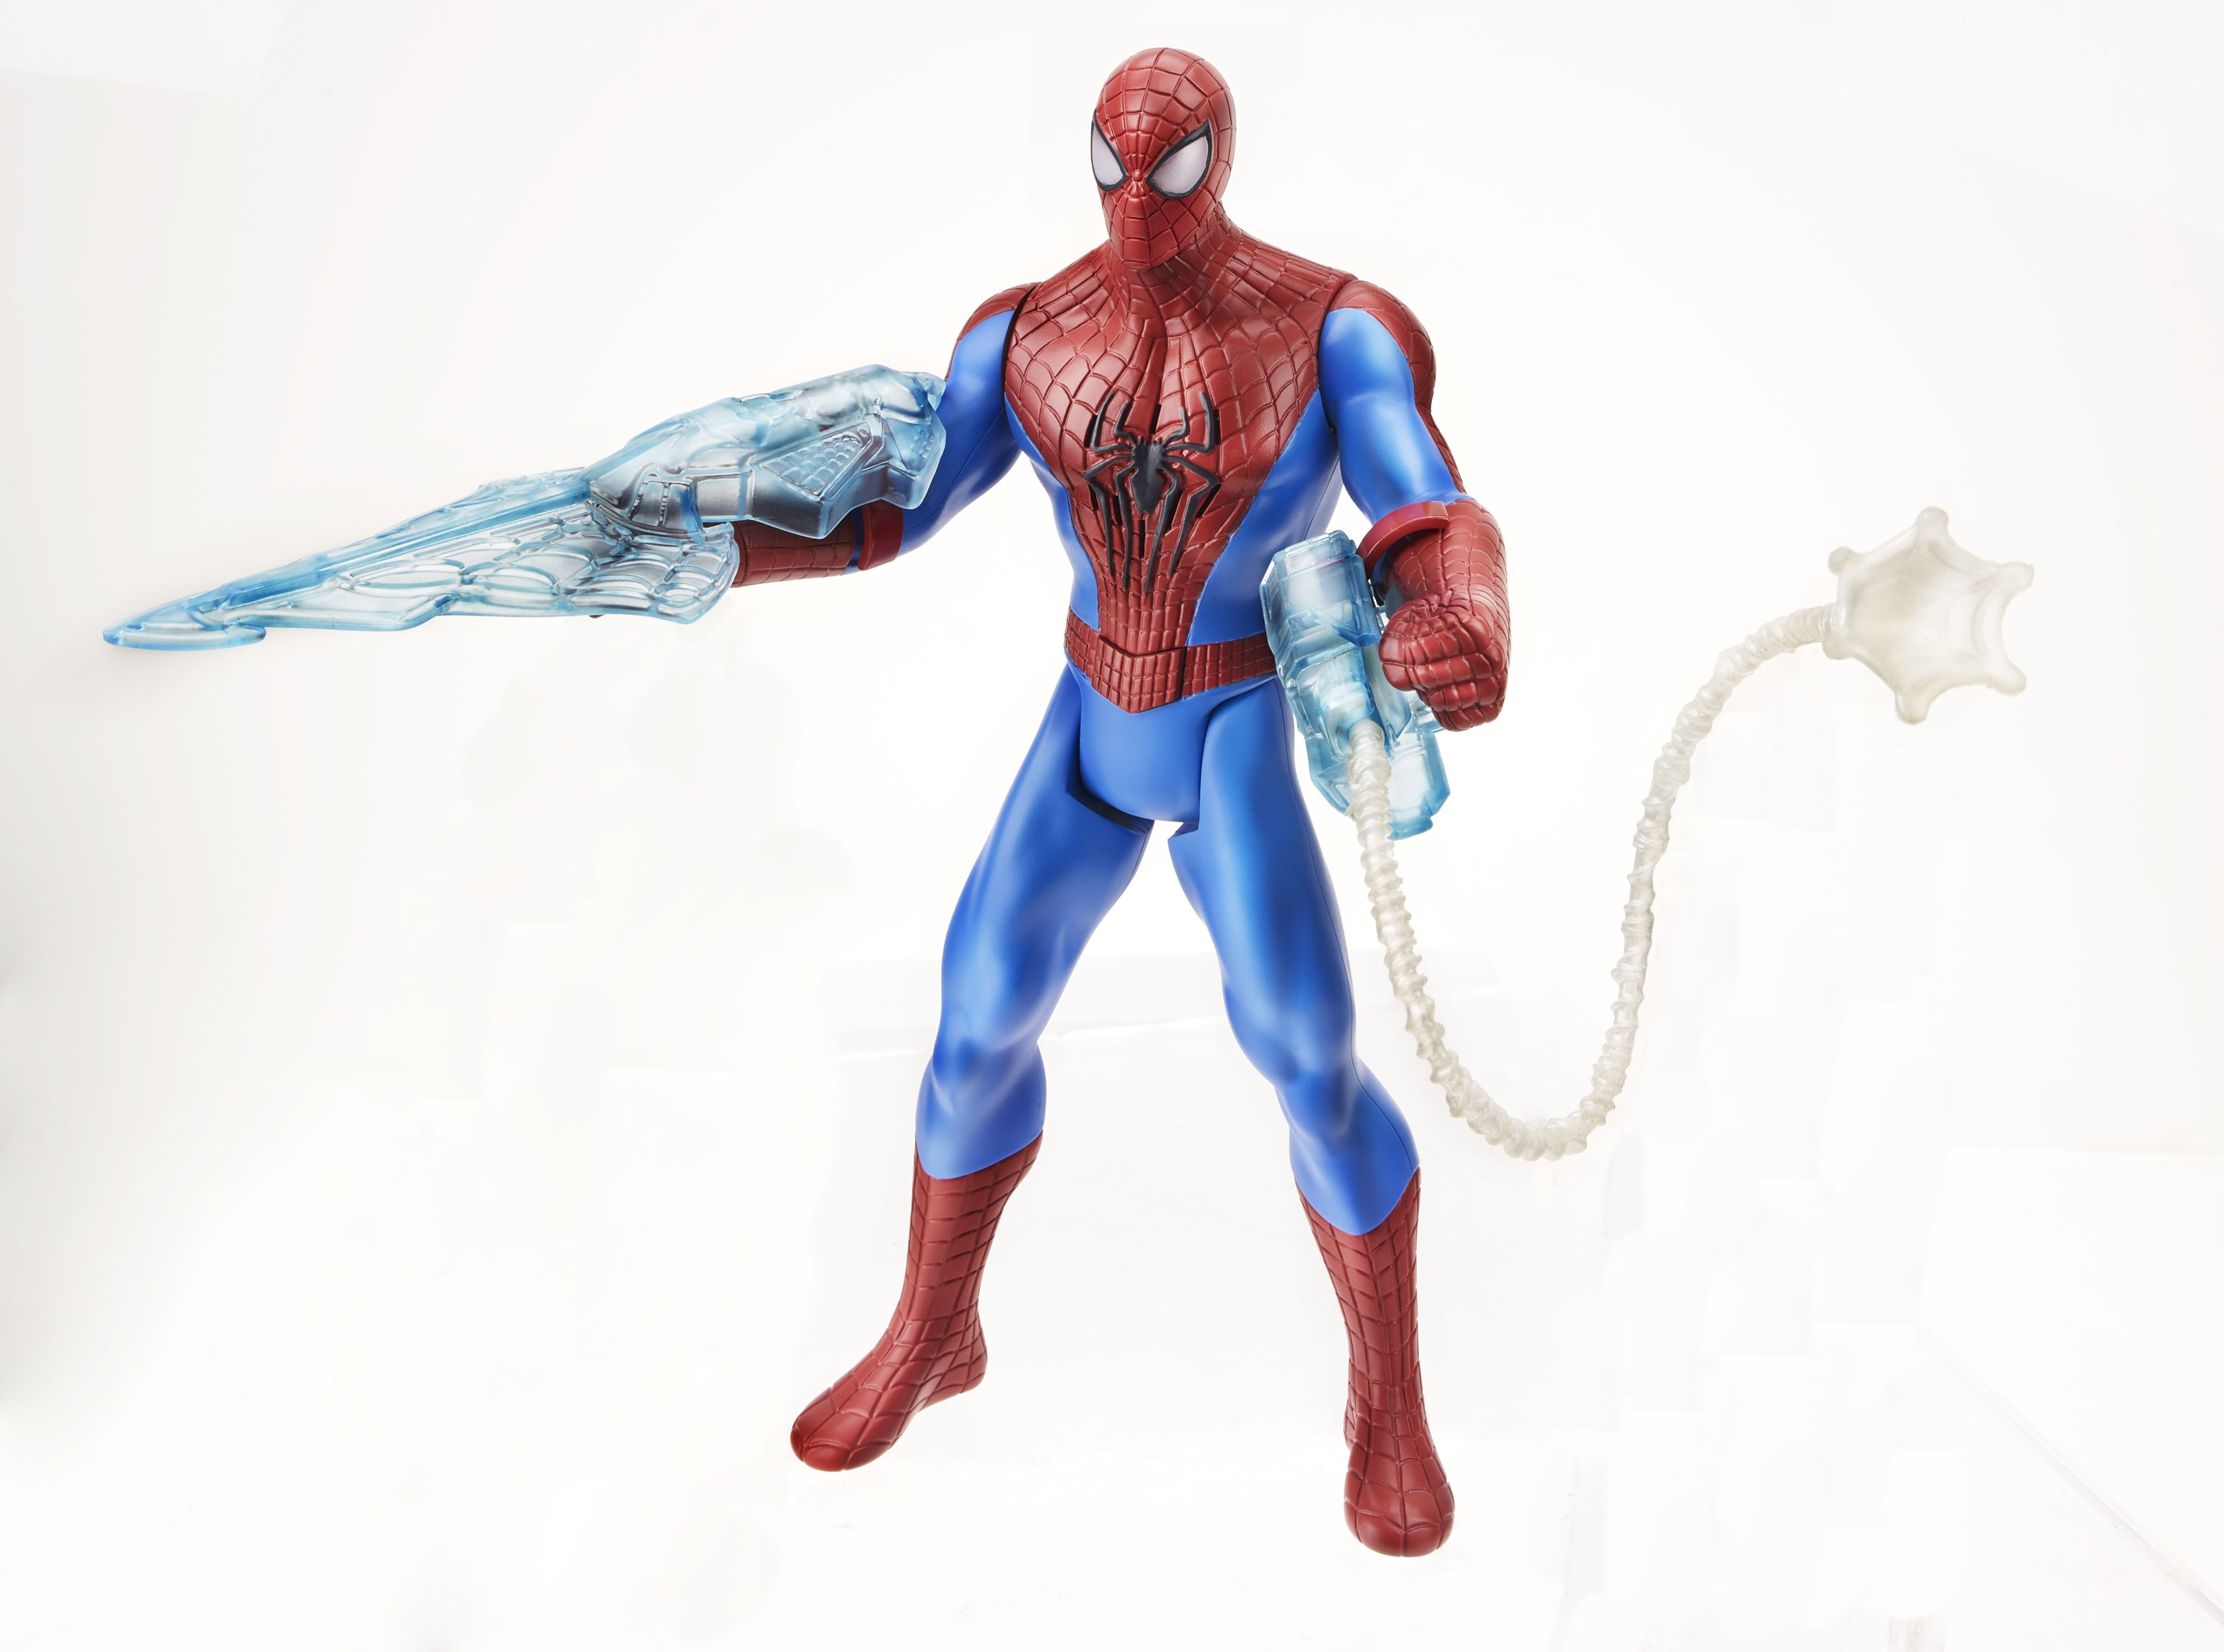 Spider Man Toys : Hasbro amazing spiderman toys press release and images